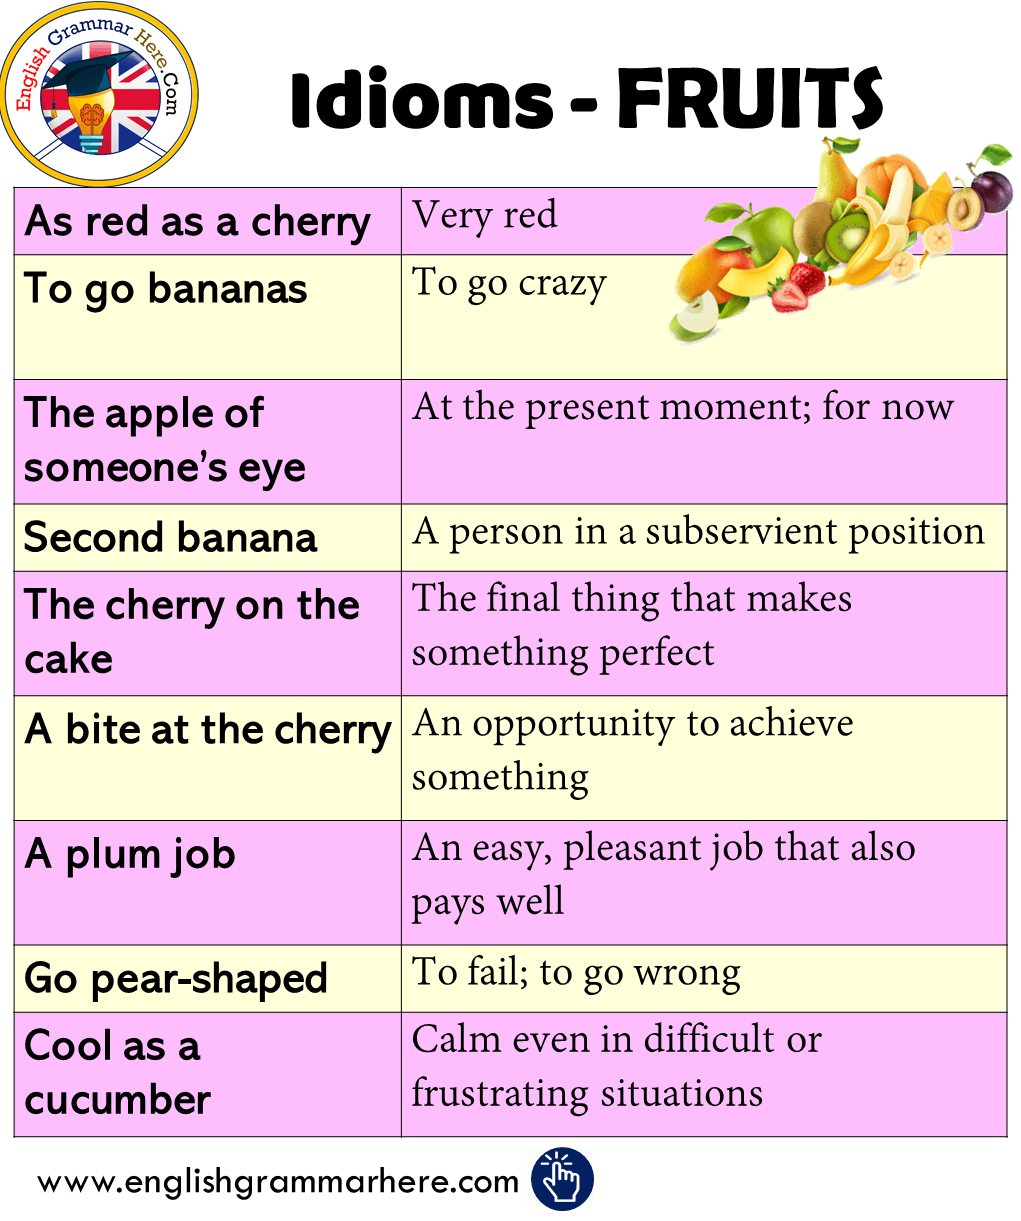 English Idioms and Meanigs; Idioms about FRUITS